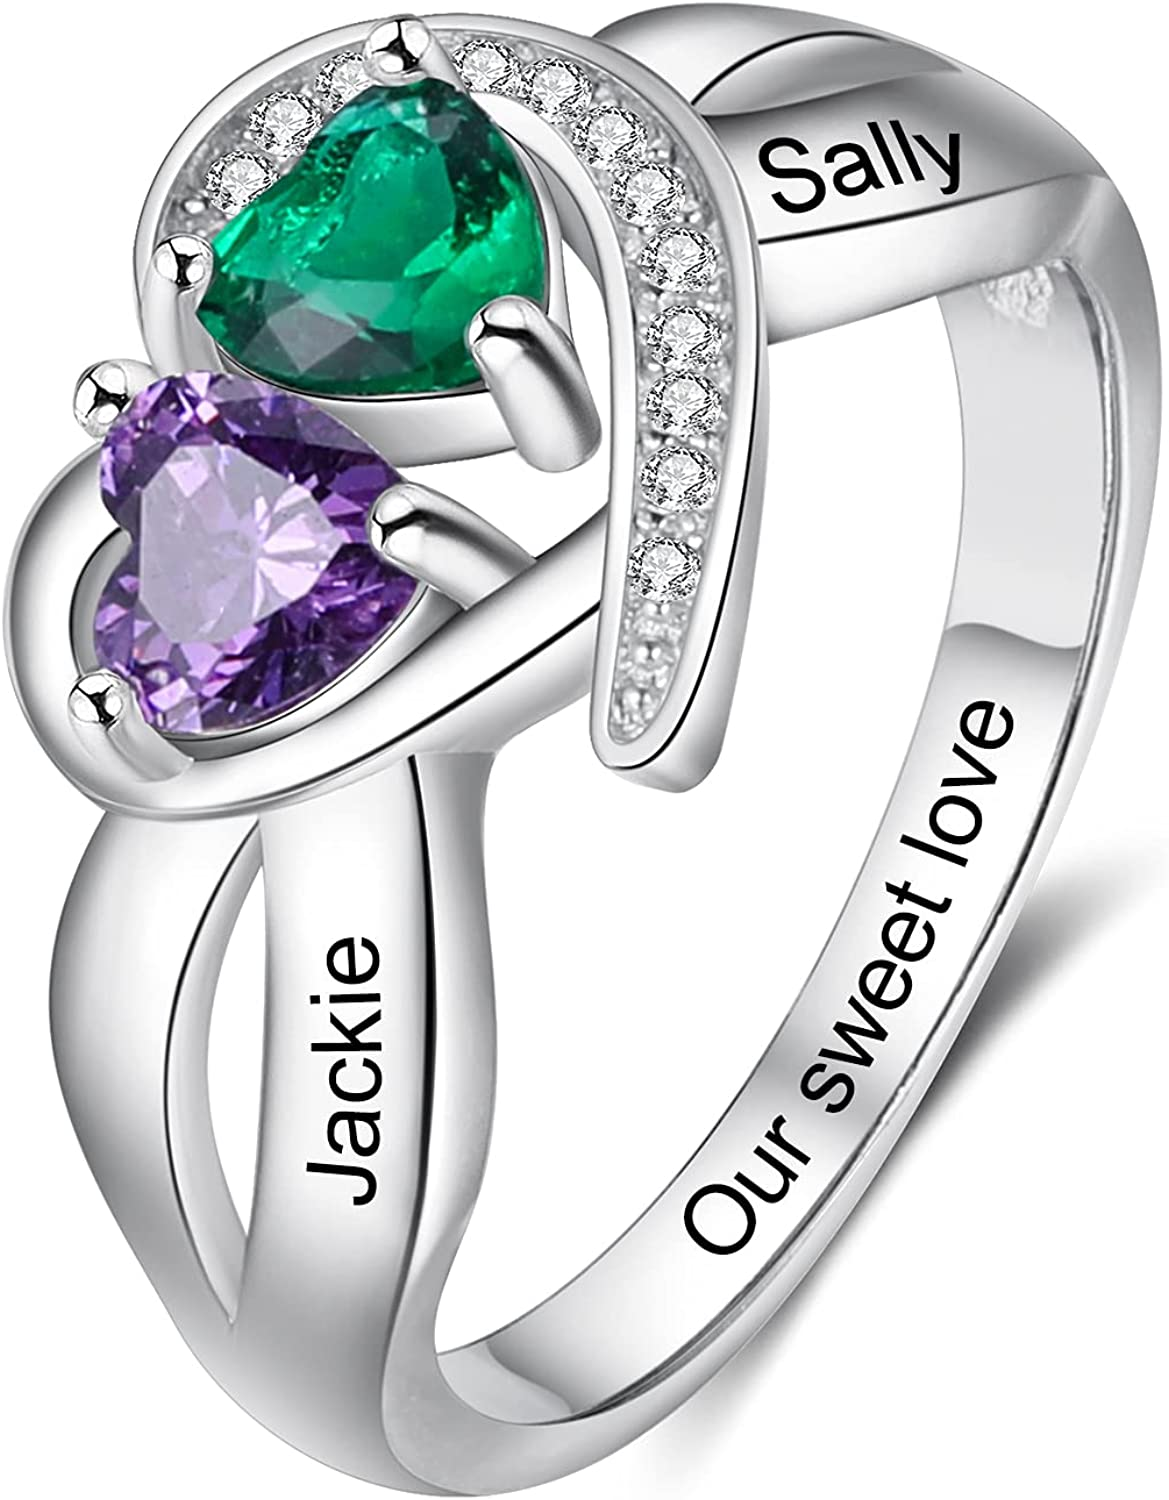 Gemszoo Personalized Name Ring Brand Cheap Sale Venue with Max 45% OFF Heart Birthstone Simulated 2